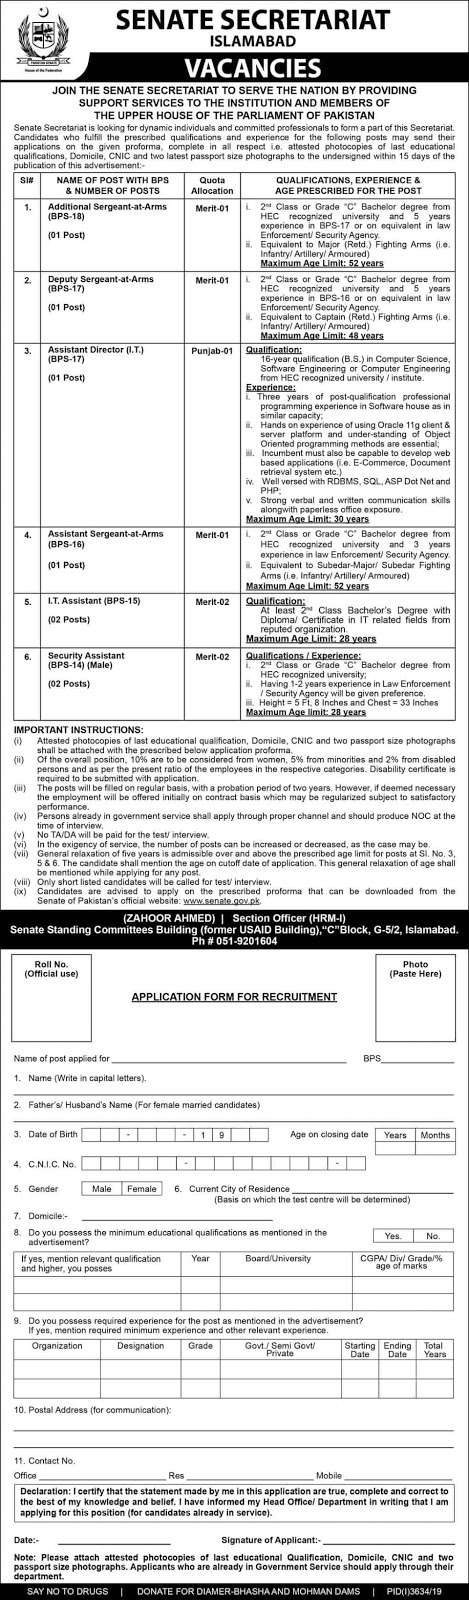 Jobs in Senate Secretariat Latest Advertisement 2020